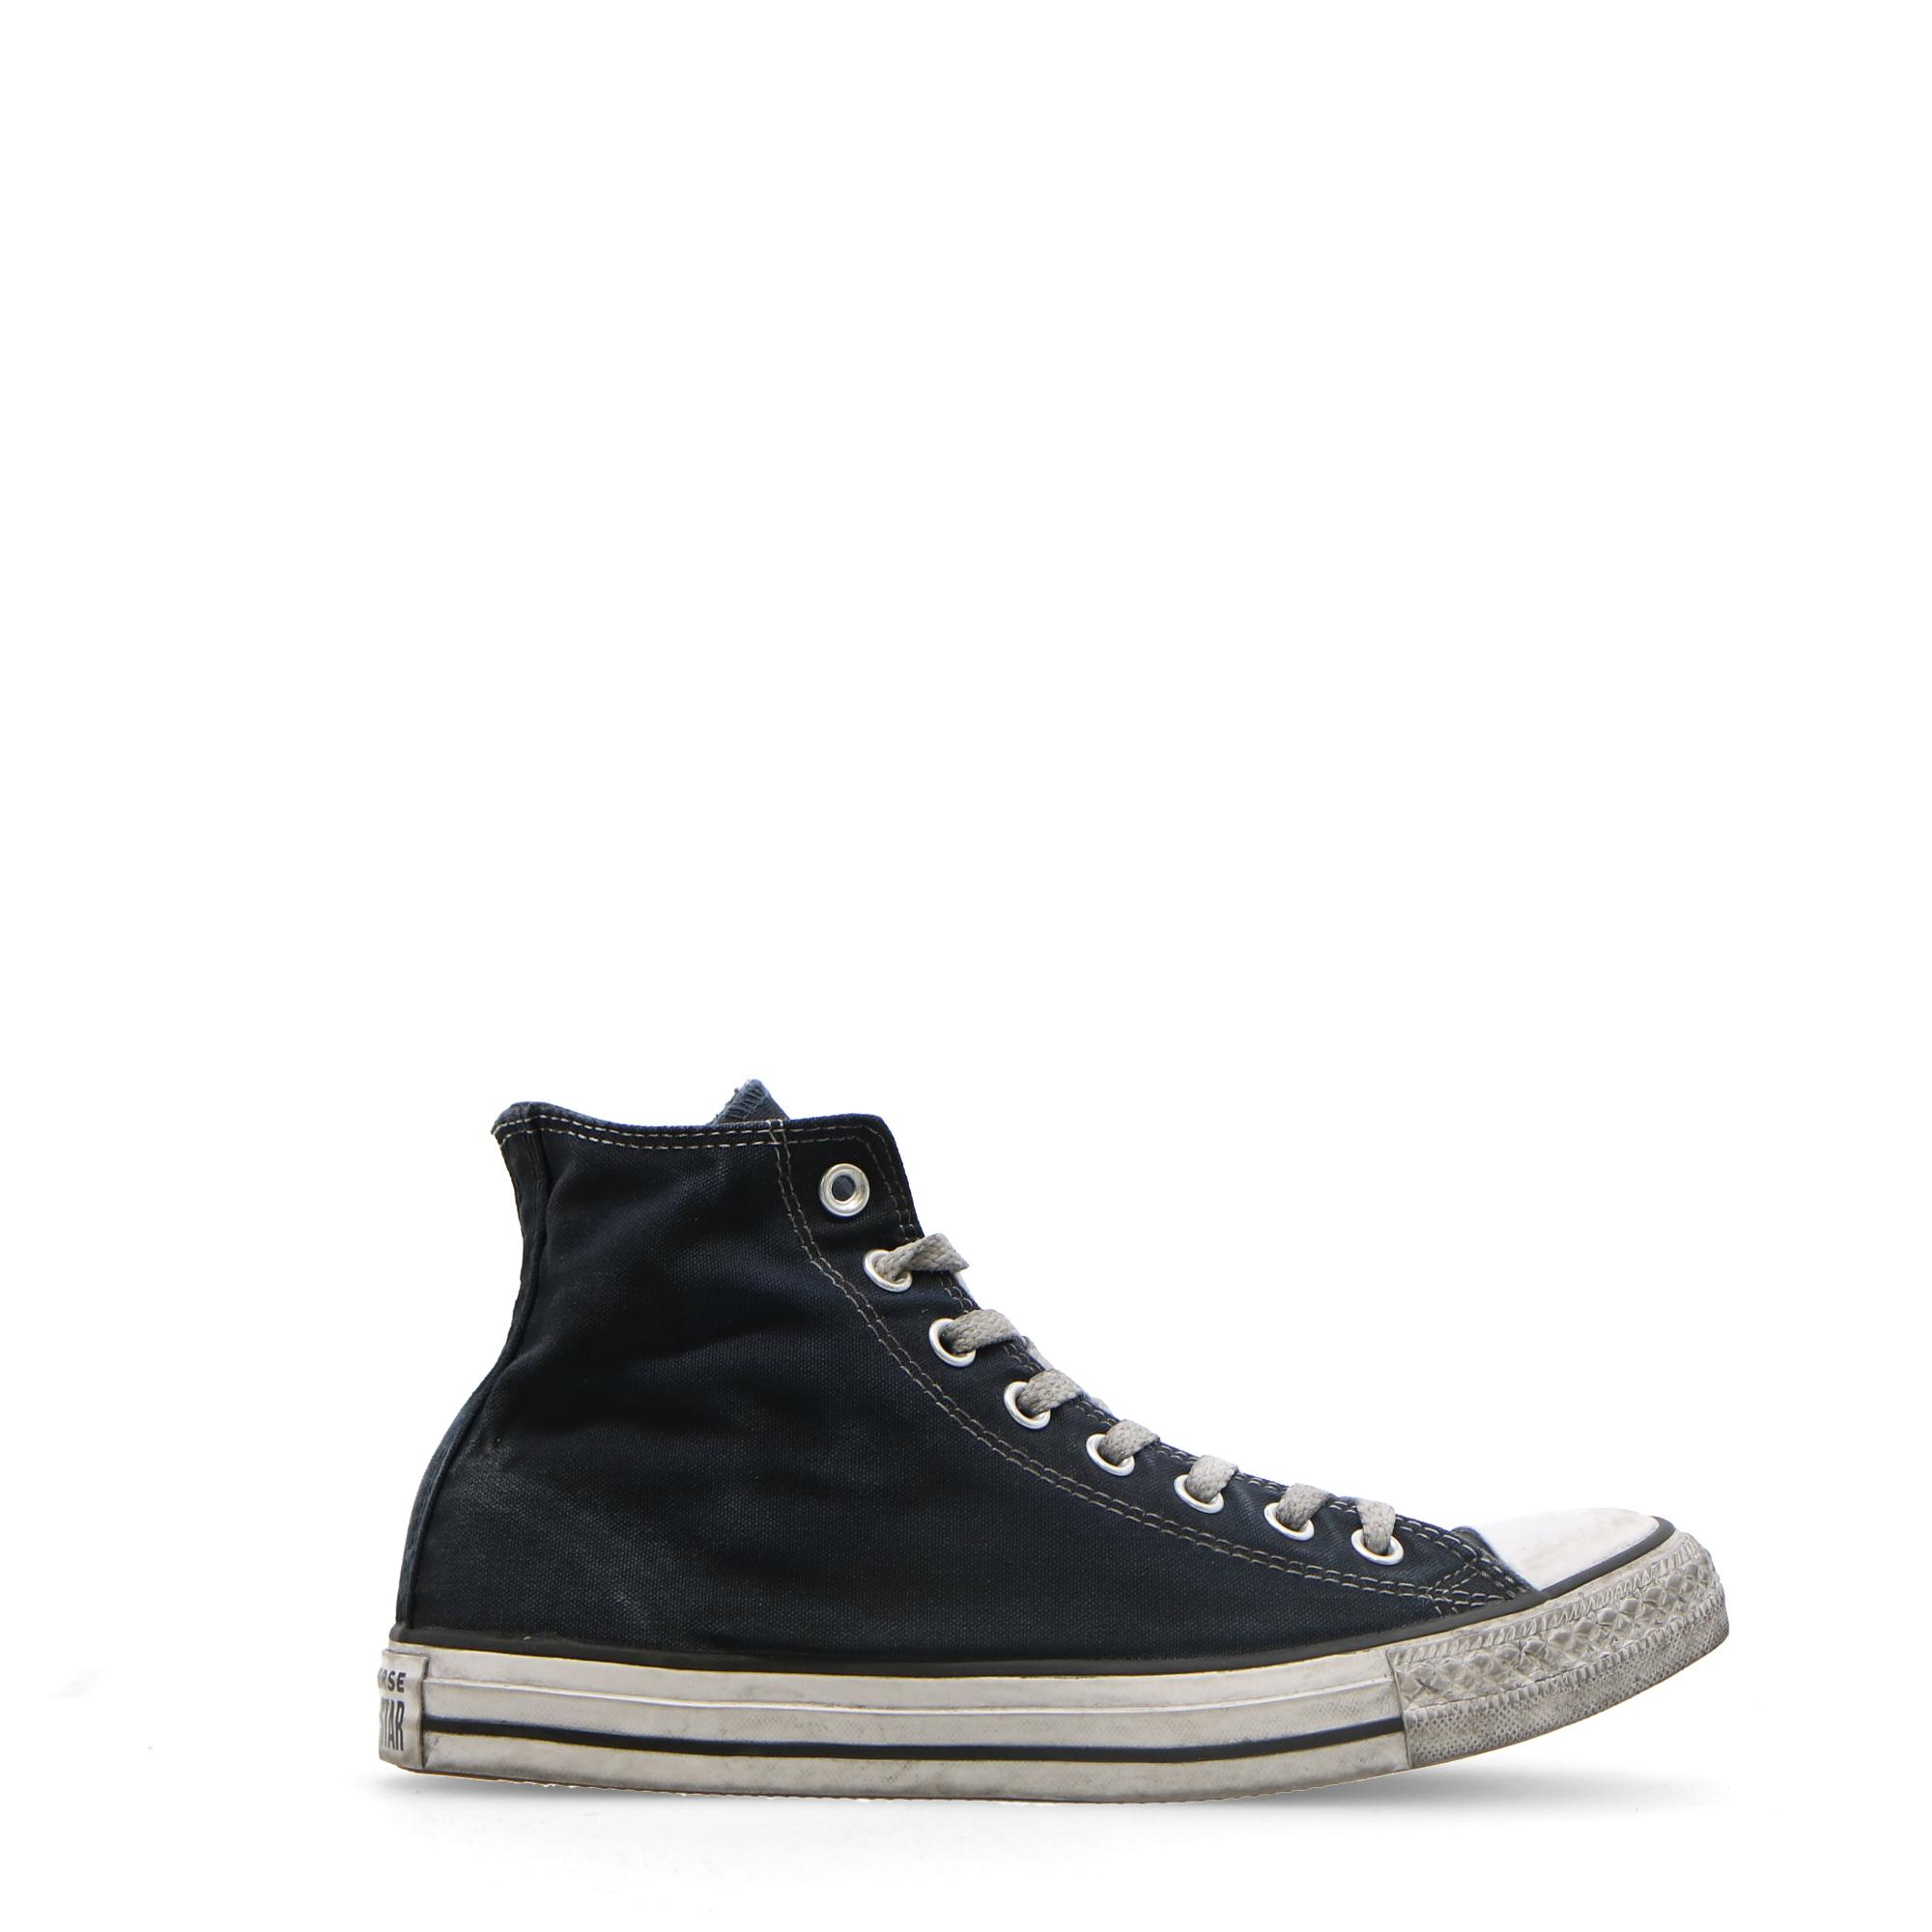 Converse Chuck Taylor All Star Canvas Ltd Hi<br/> Navy navy white